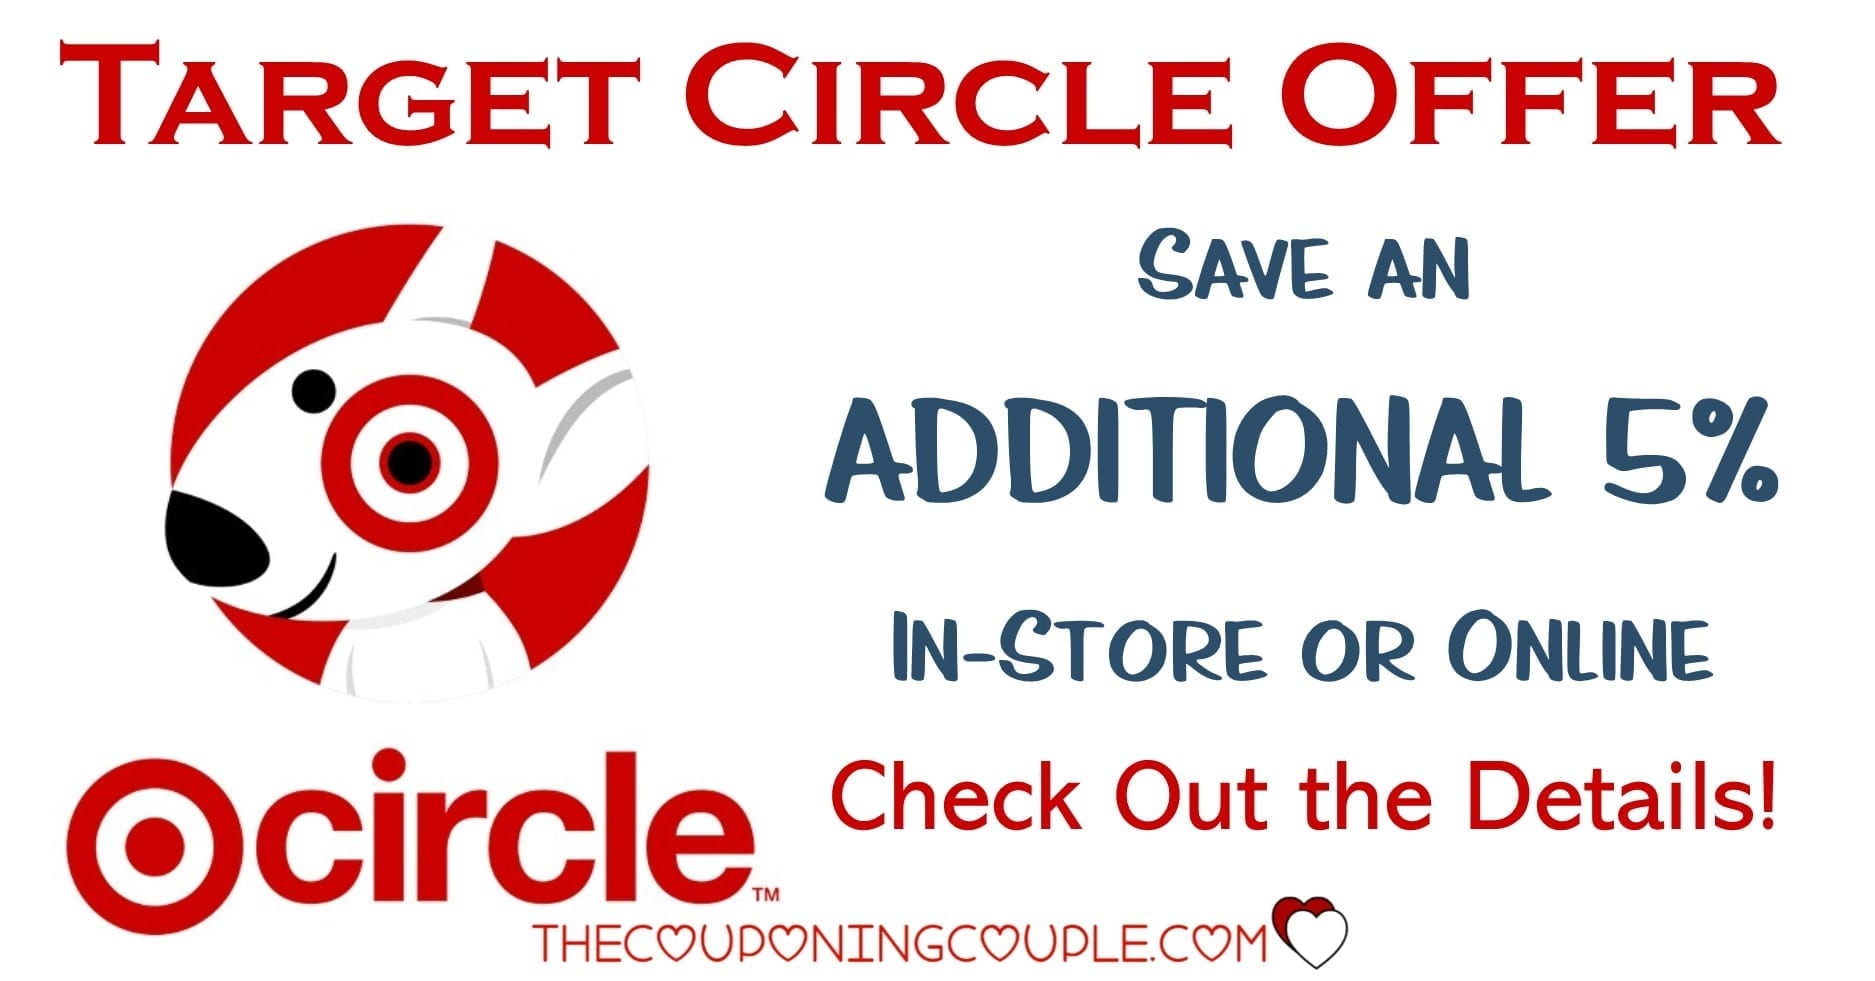 Target Circle Offer